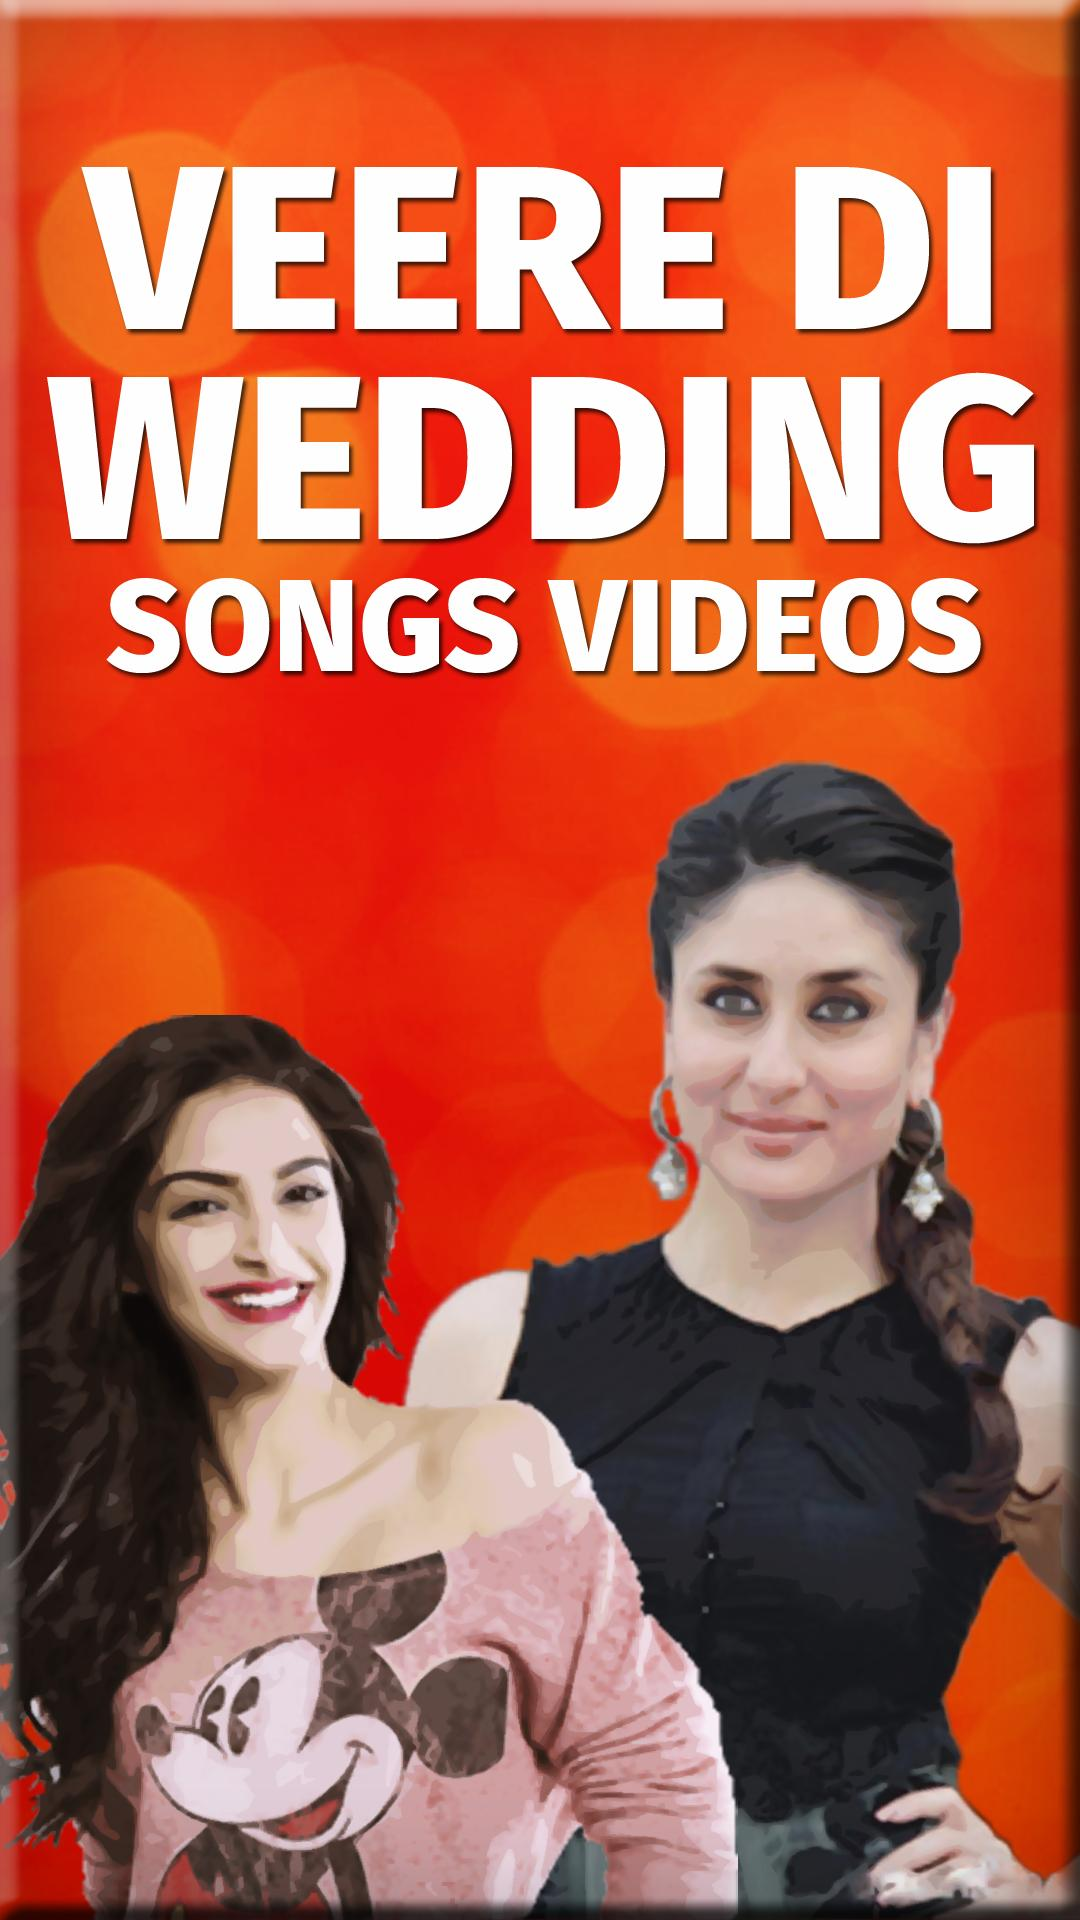 Veere Di Wedding Songs - Latest Bollywood Songs for Android